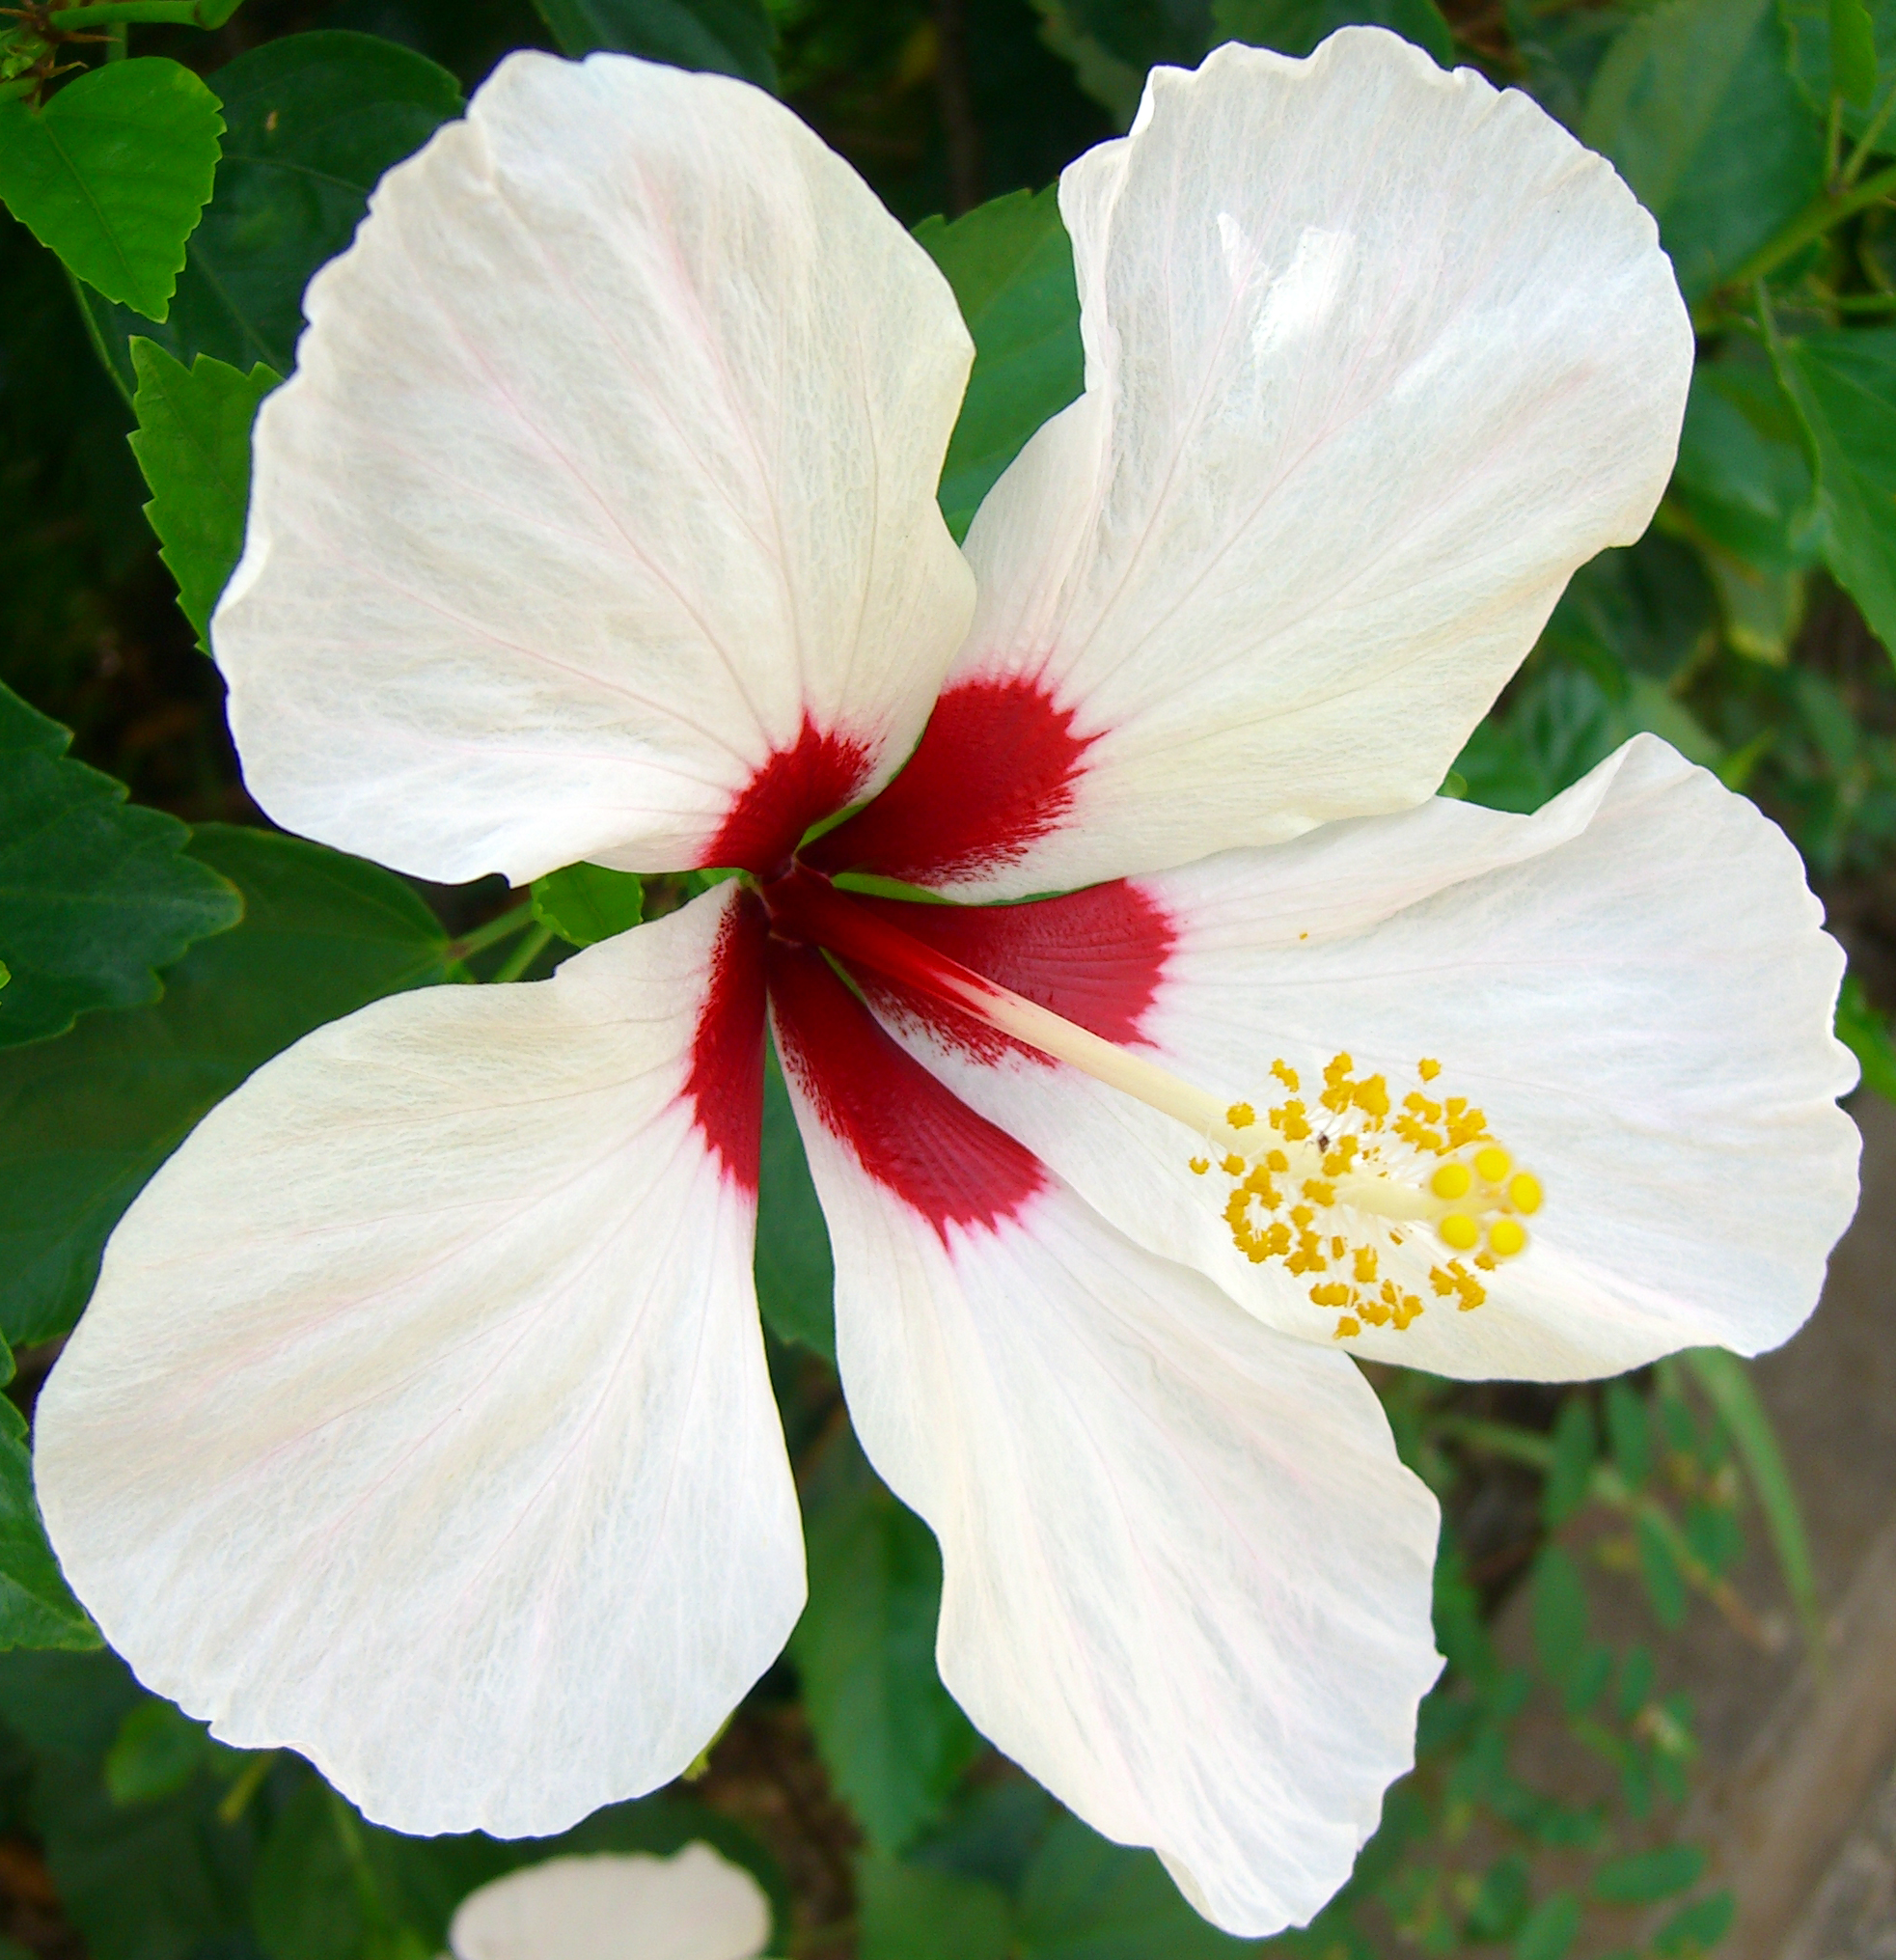 Filehibiscus 5g wikimedia commons filehibiscus 5g izmirmasajfo